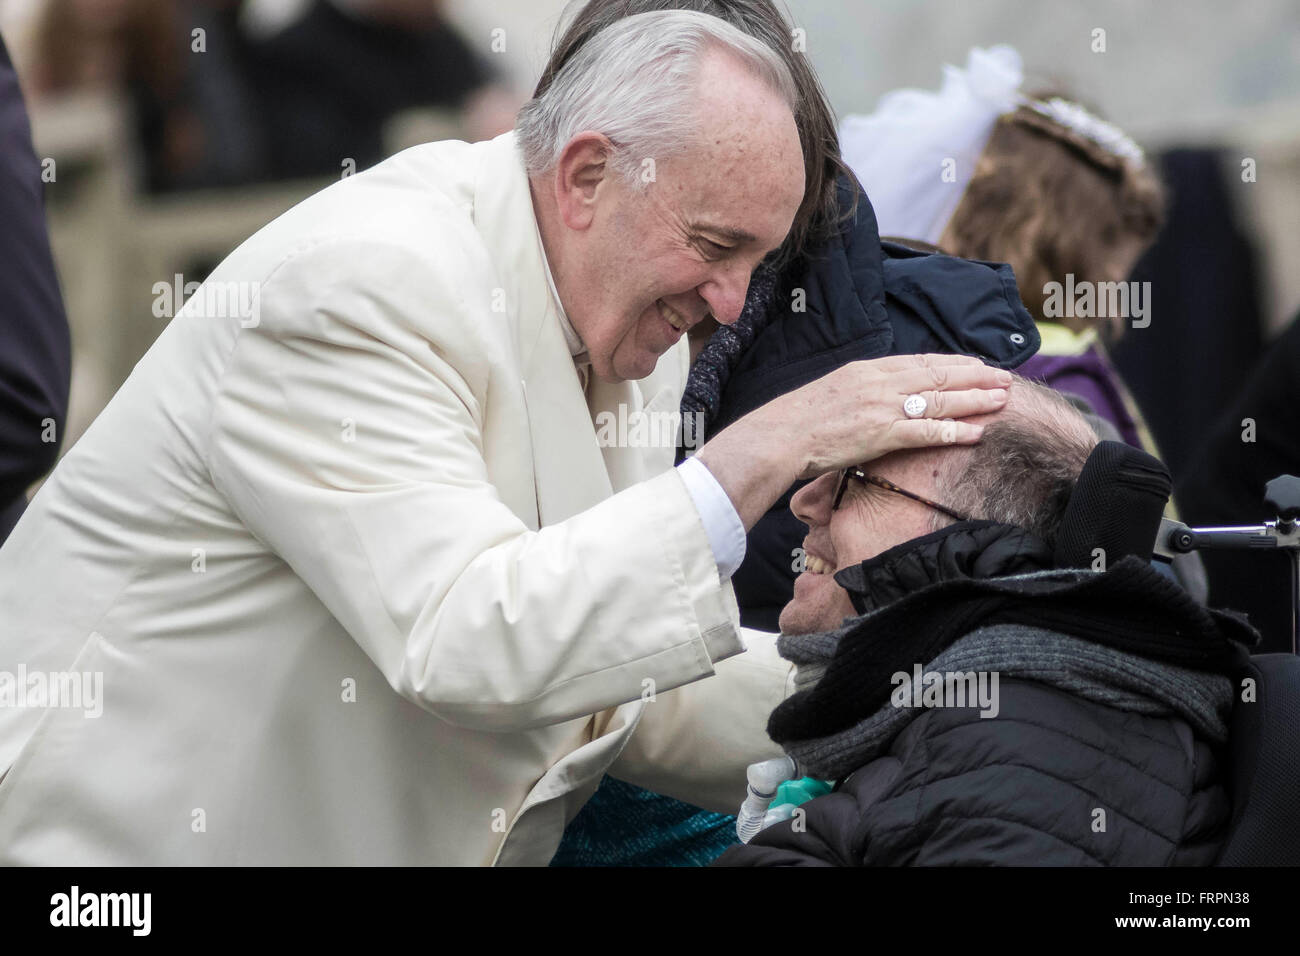 Vatican City, Vatican. 23rd Mar, 2016. Pope Francis blesses sick people during his Weekly General Audience in St. - Stock Image